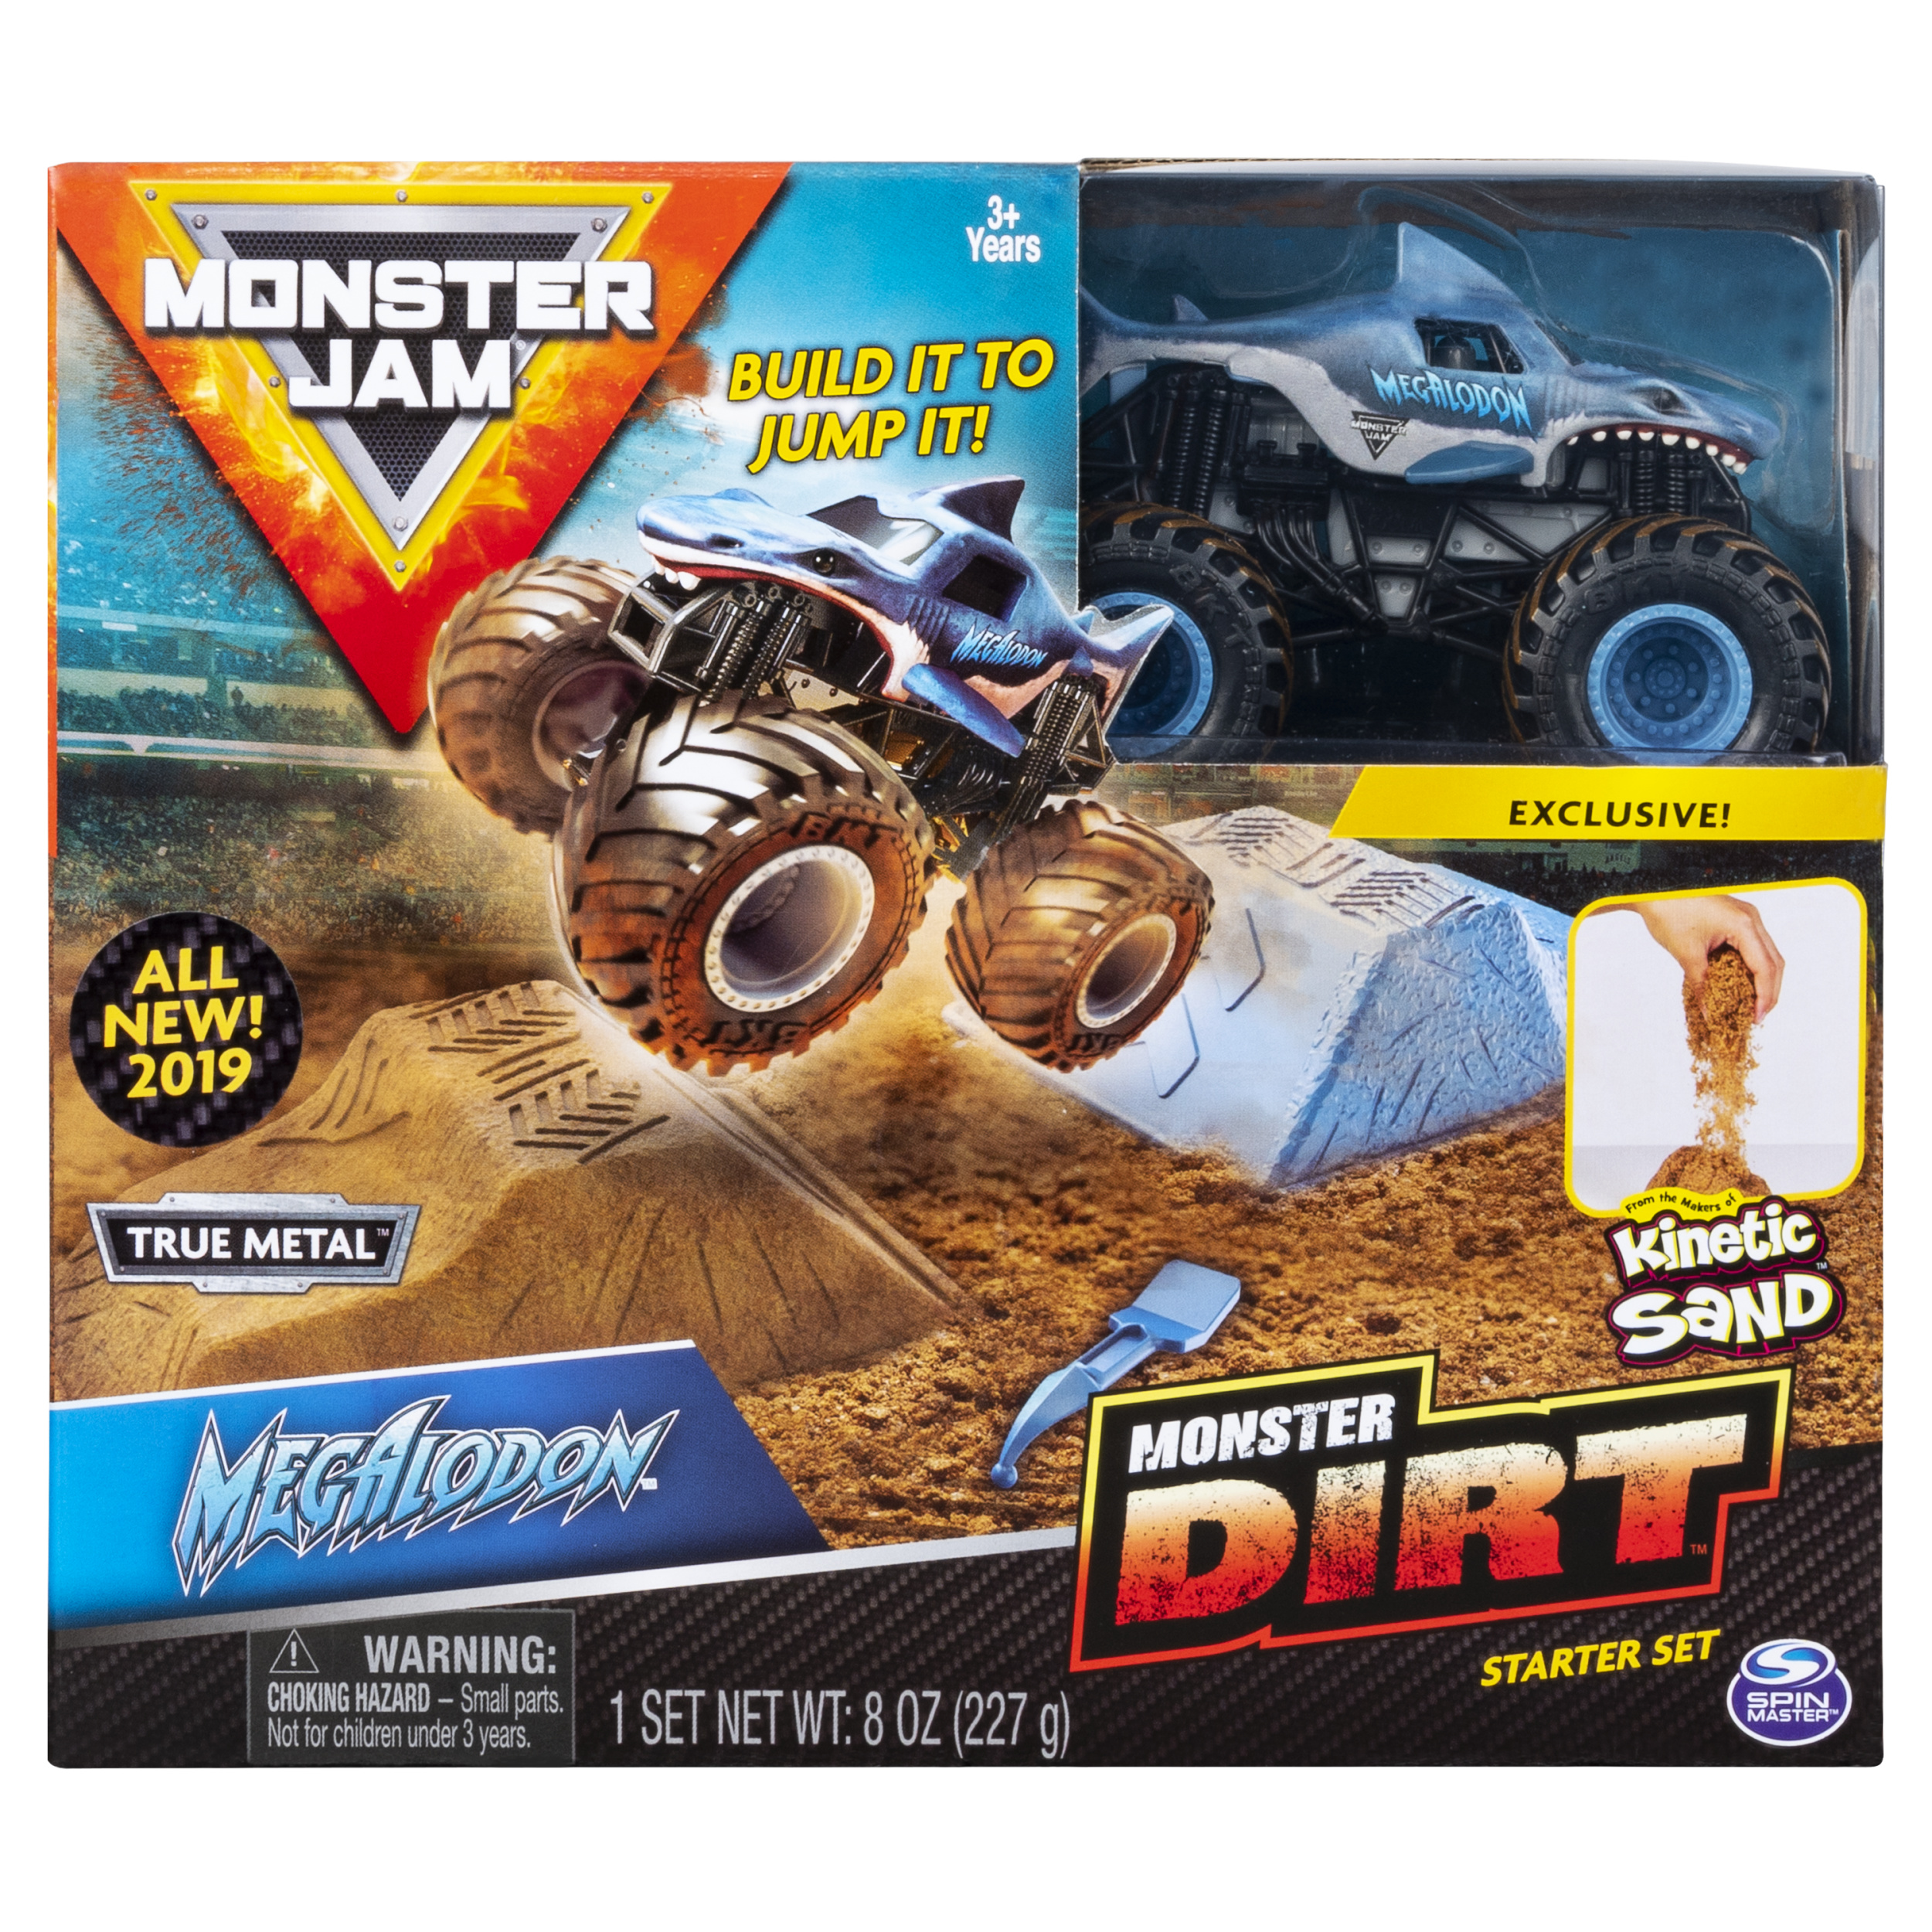 Monster Jam, Megalodon Monster Dirt Starter Set, Featuring 8oz of Monster Dirt and Official 1:64 Scale Die-Cast Monster Jam Truck